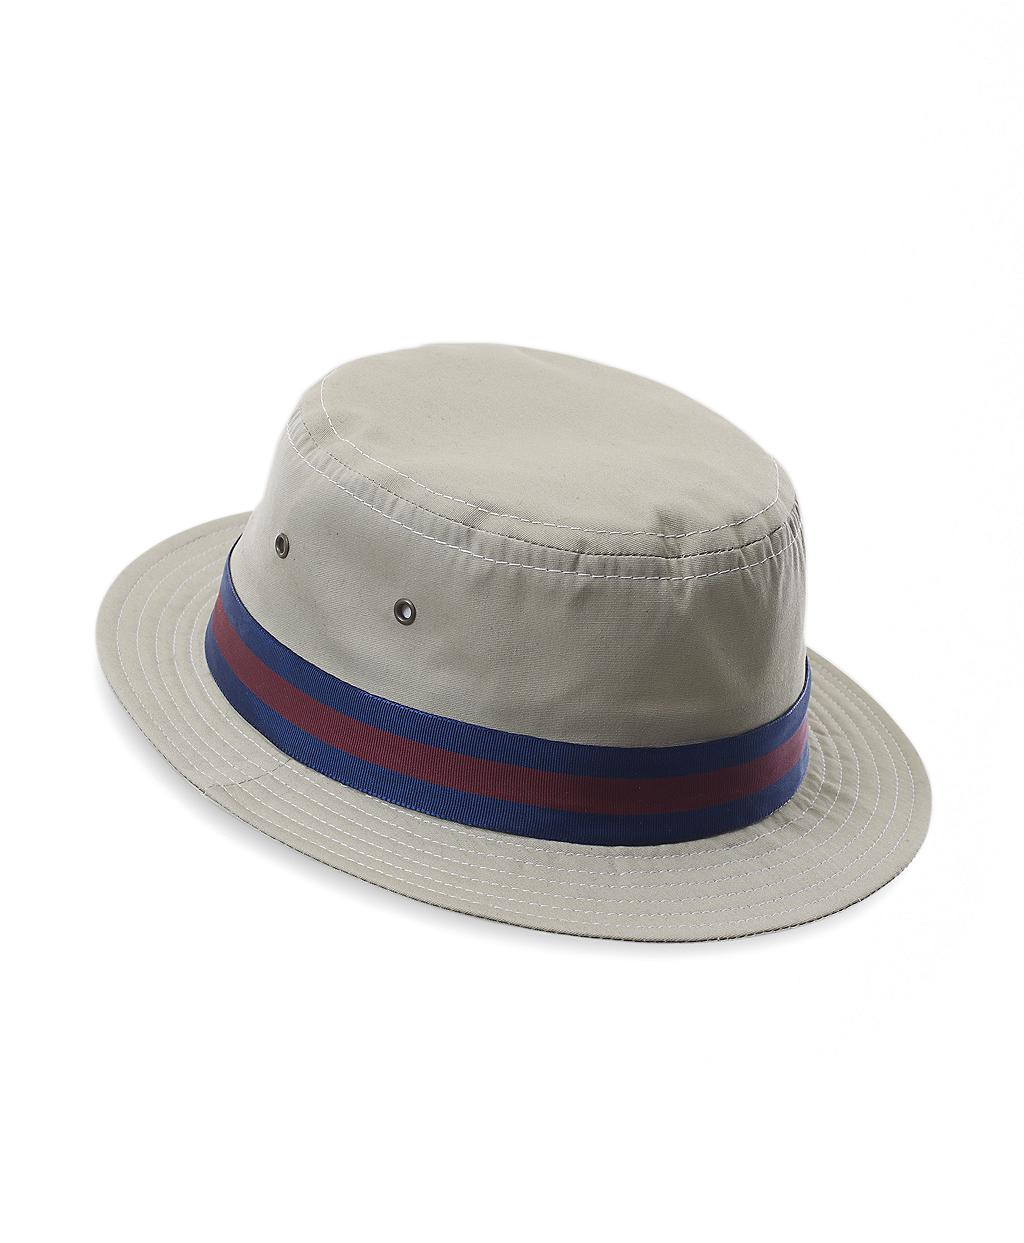 9f89b3c0dcf27 Brooks Brothers Poplin Bucket Hat in Natural for Men - Lyst